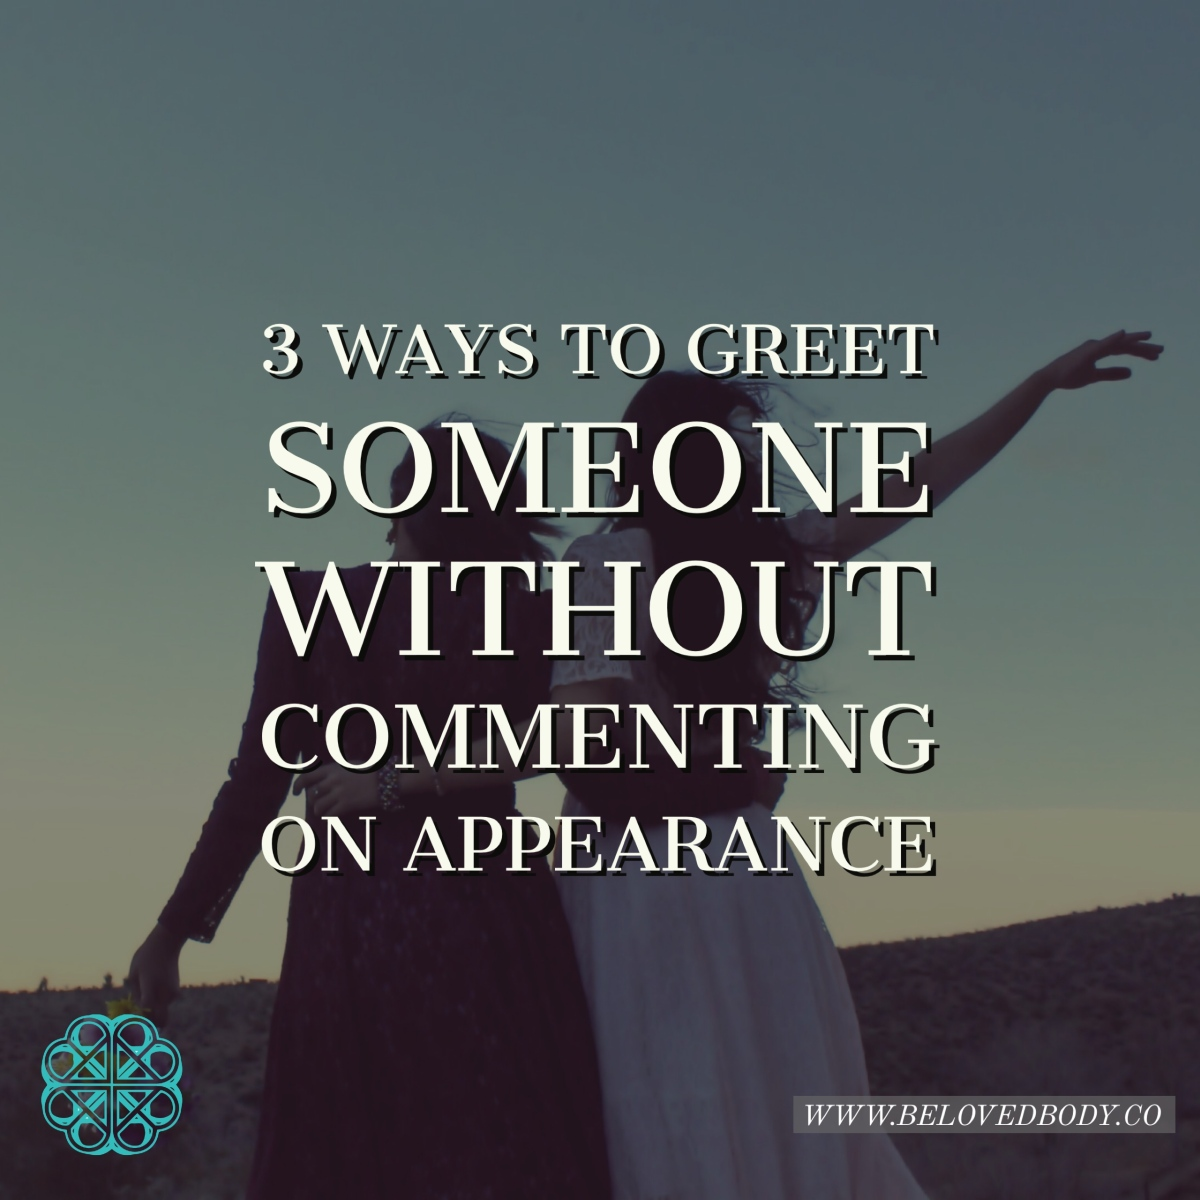 3 Ways To Greet Someone Without Commenting On Their Appearance